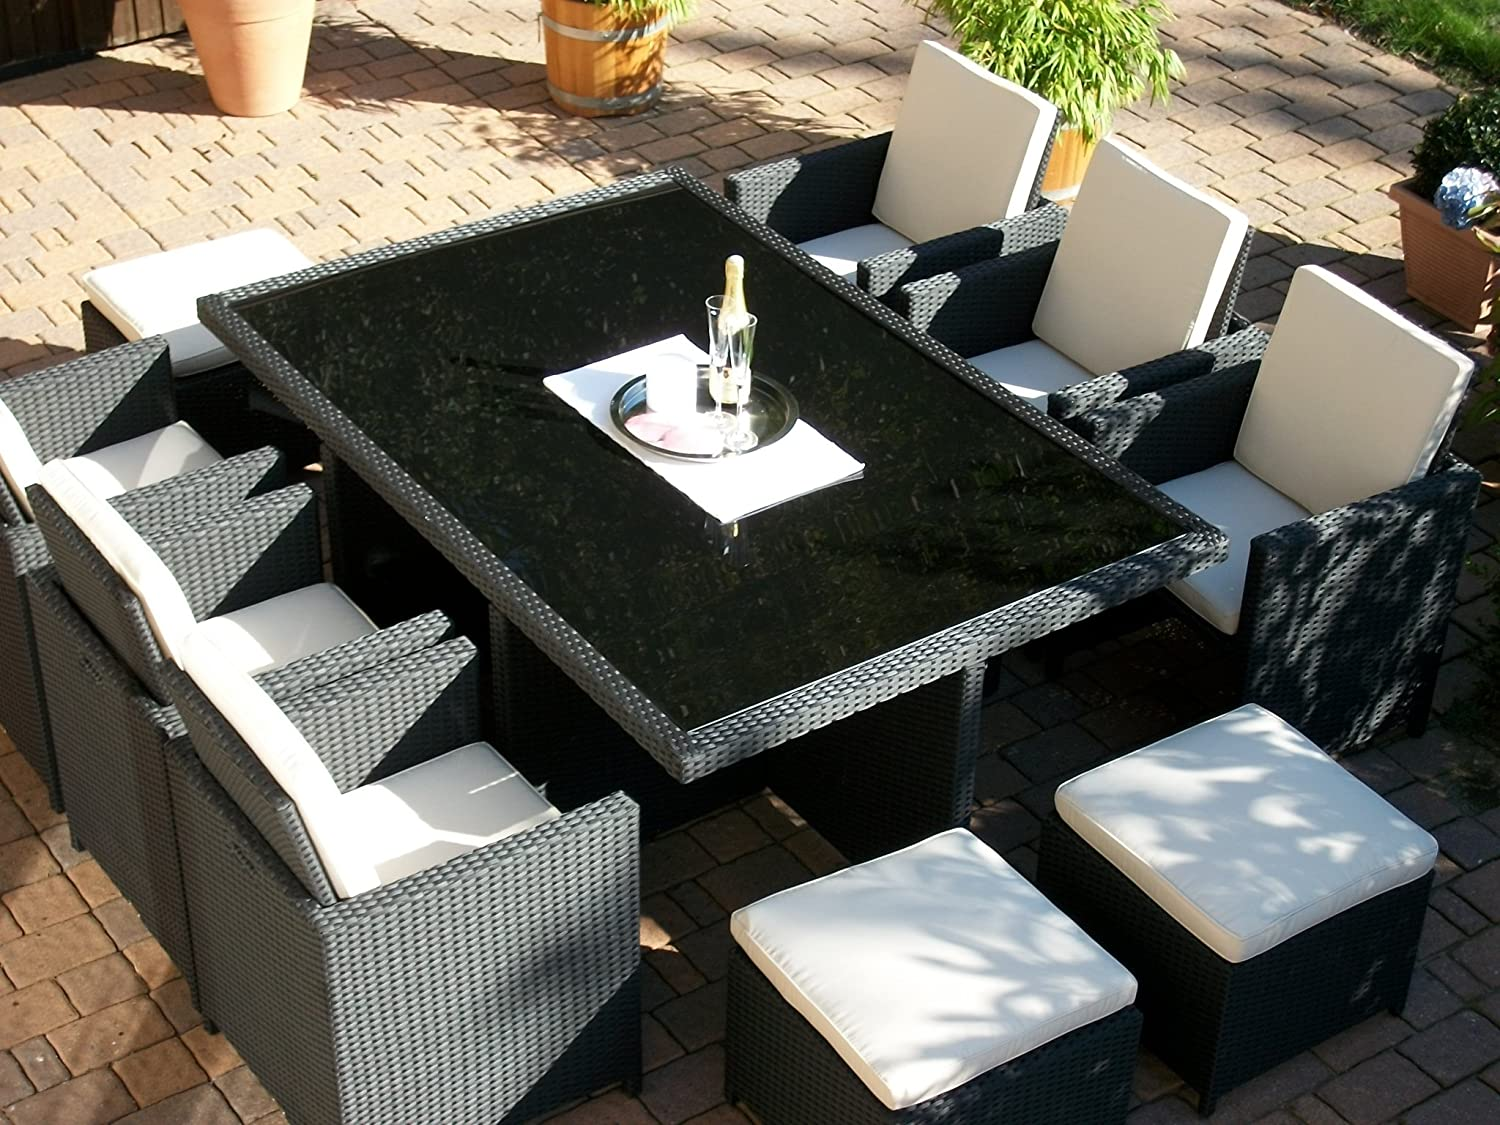 polyrattan rattan geflecht garten sitzgruppe toscana xl in schwarz tisch 6 sessel 3 hocker kaufen. Black Bedroom Furniture Sets. Home Design Ideas